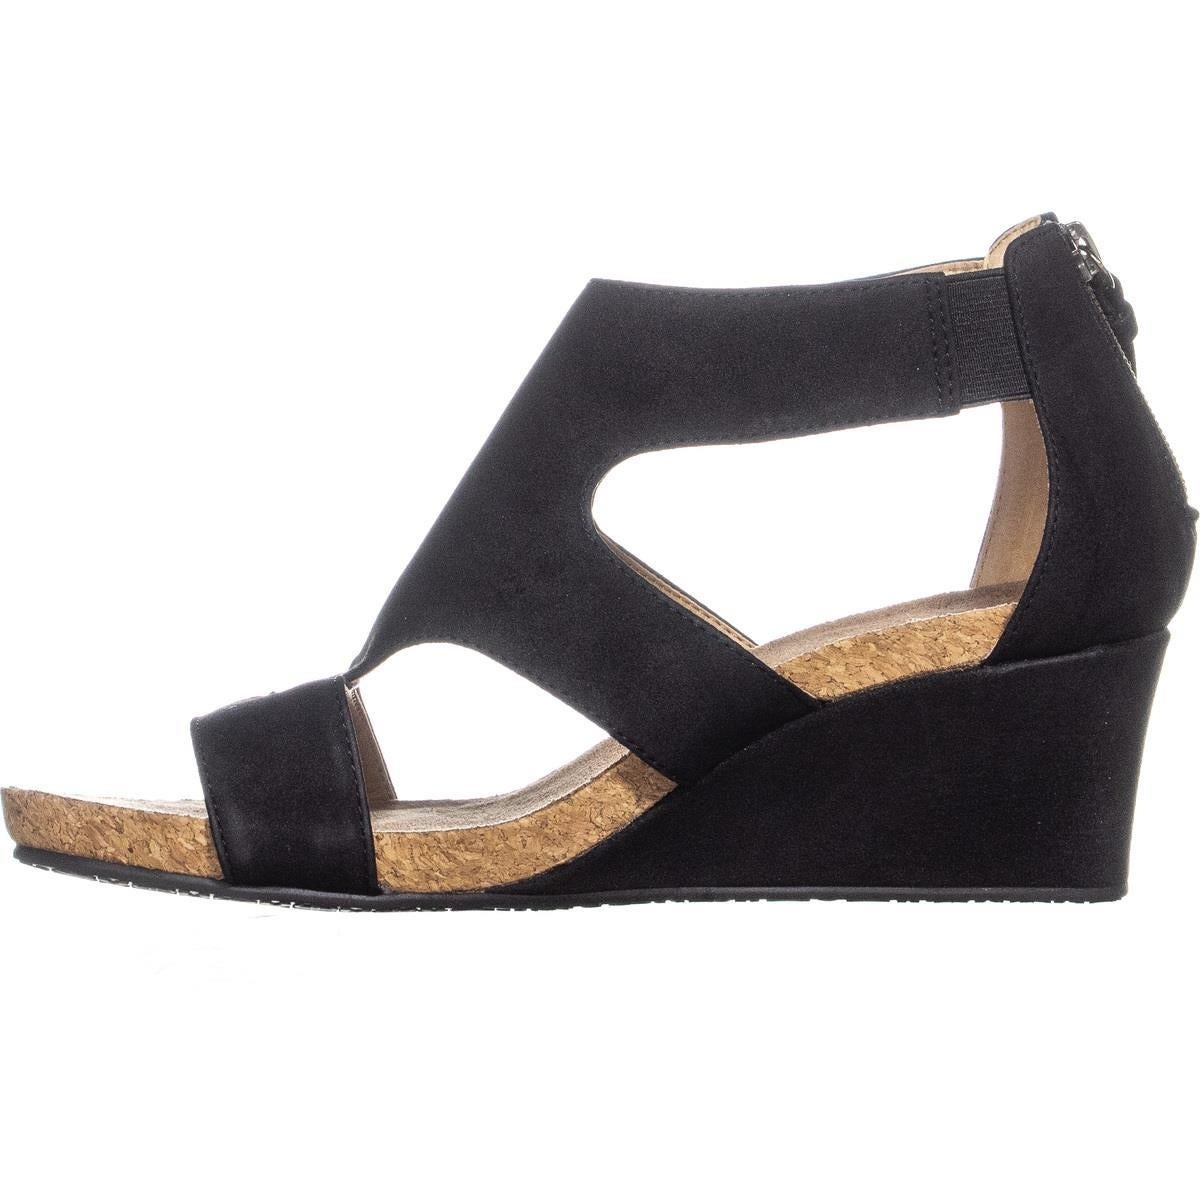 5fe992729d8 Shop Adrienne Vittadini Tricia Wedge Sanals